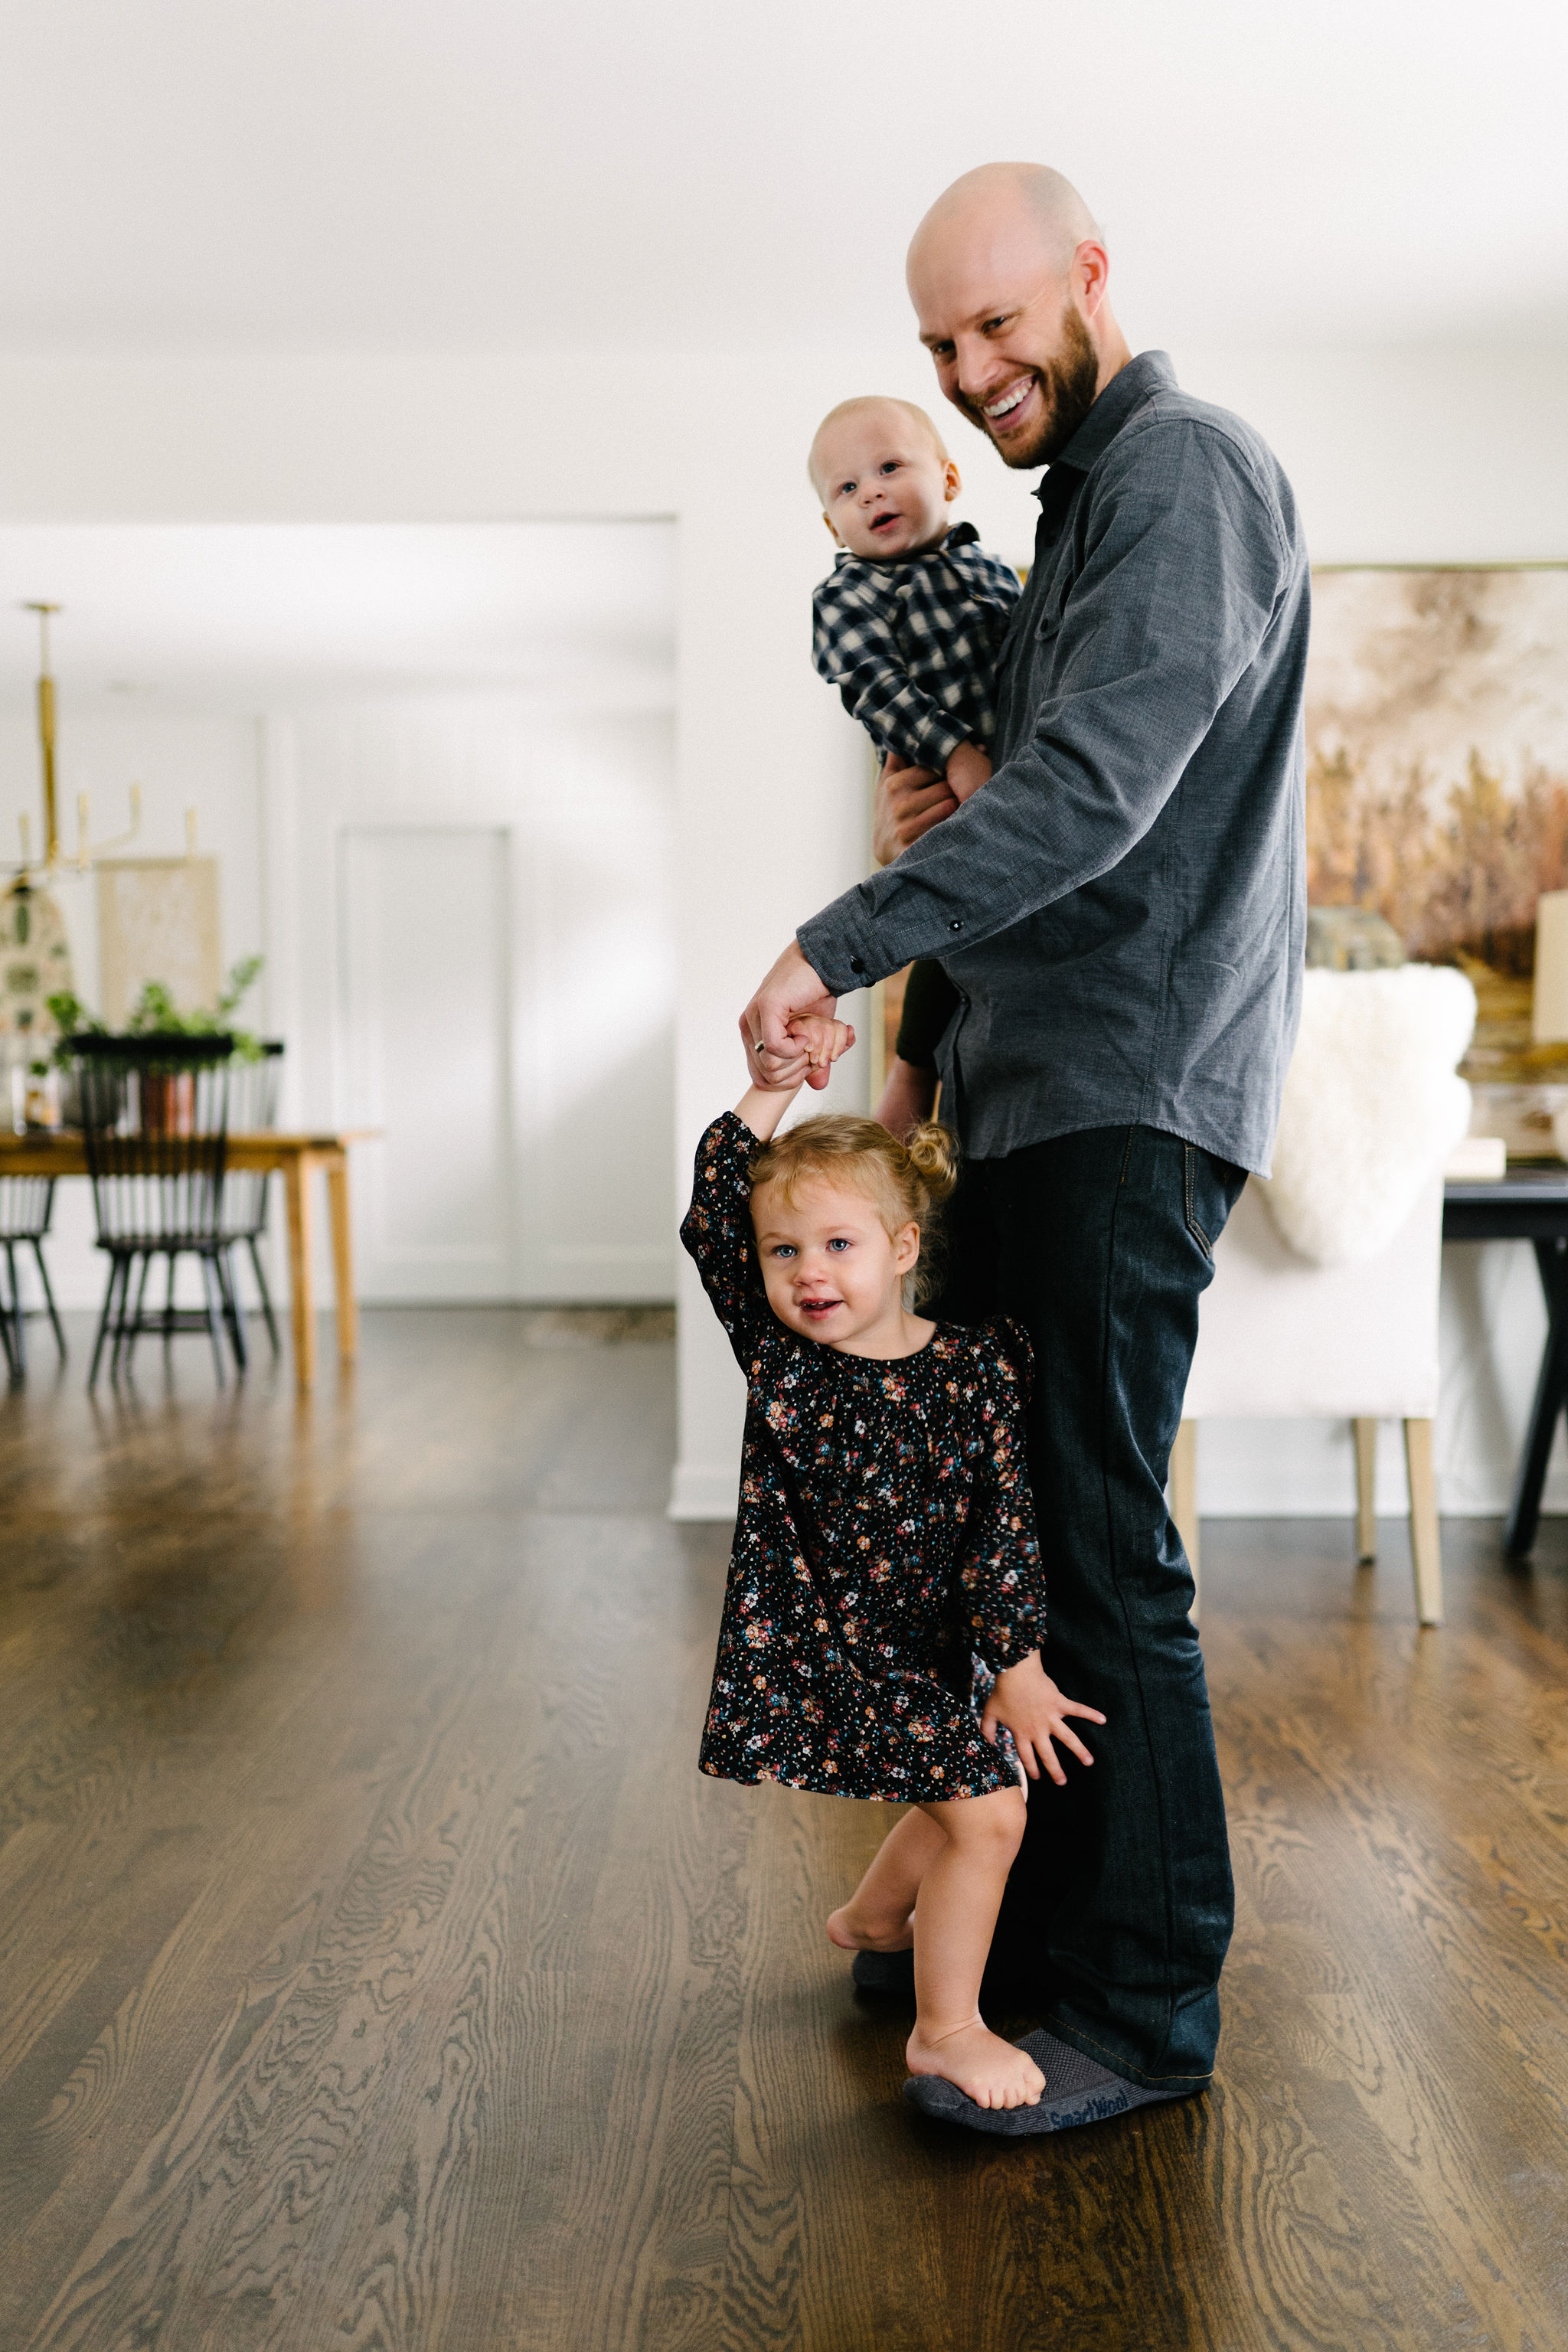 rempel-photography-oak-park-chicago-family-session-in-home-goode-30.jpg